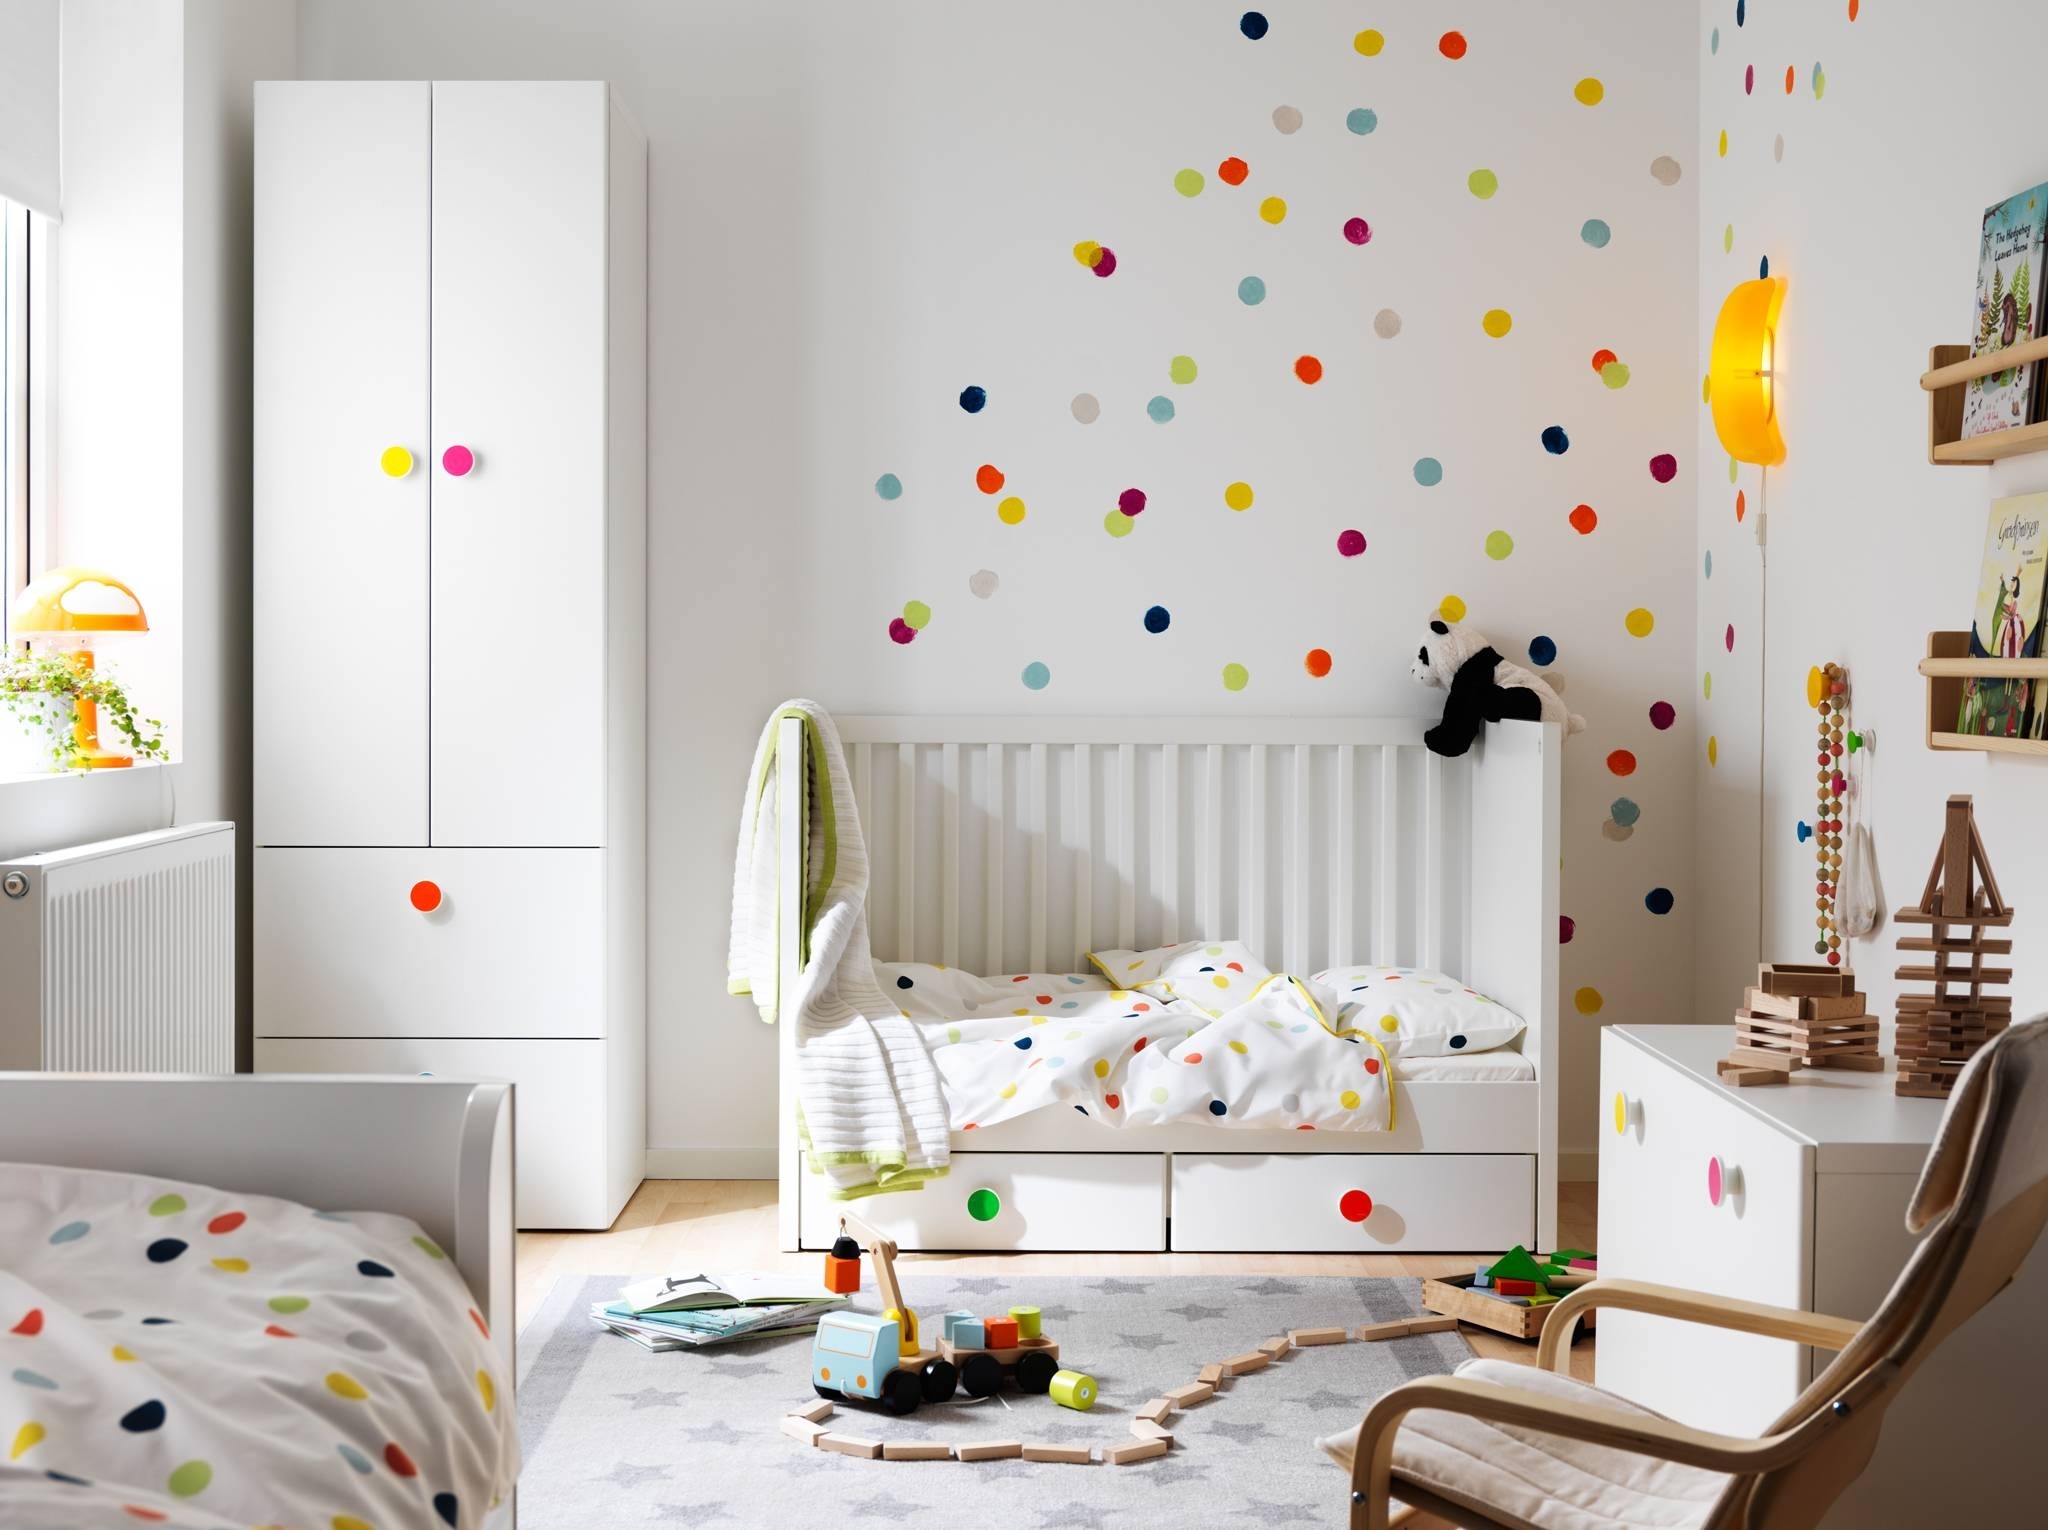 Children's Furniture & Ideas | Ikea regarding Childrens Bed With Wardrobes Underneath (Image 5 of 15)